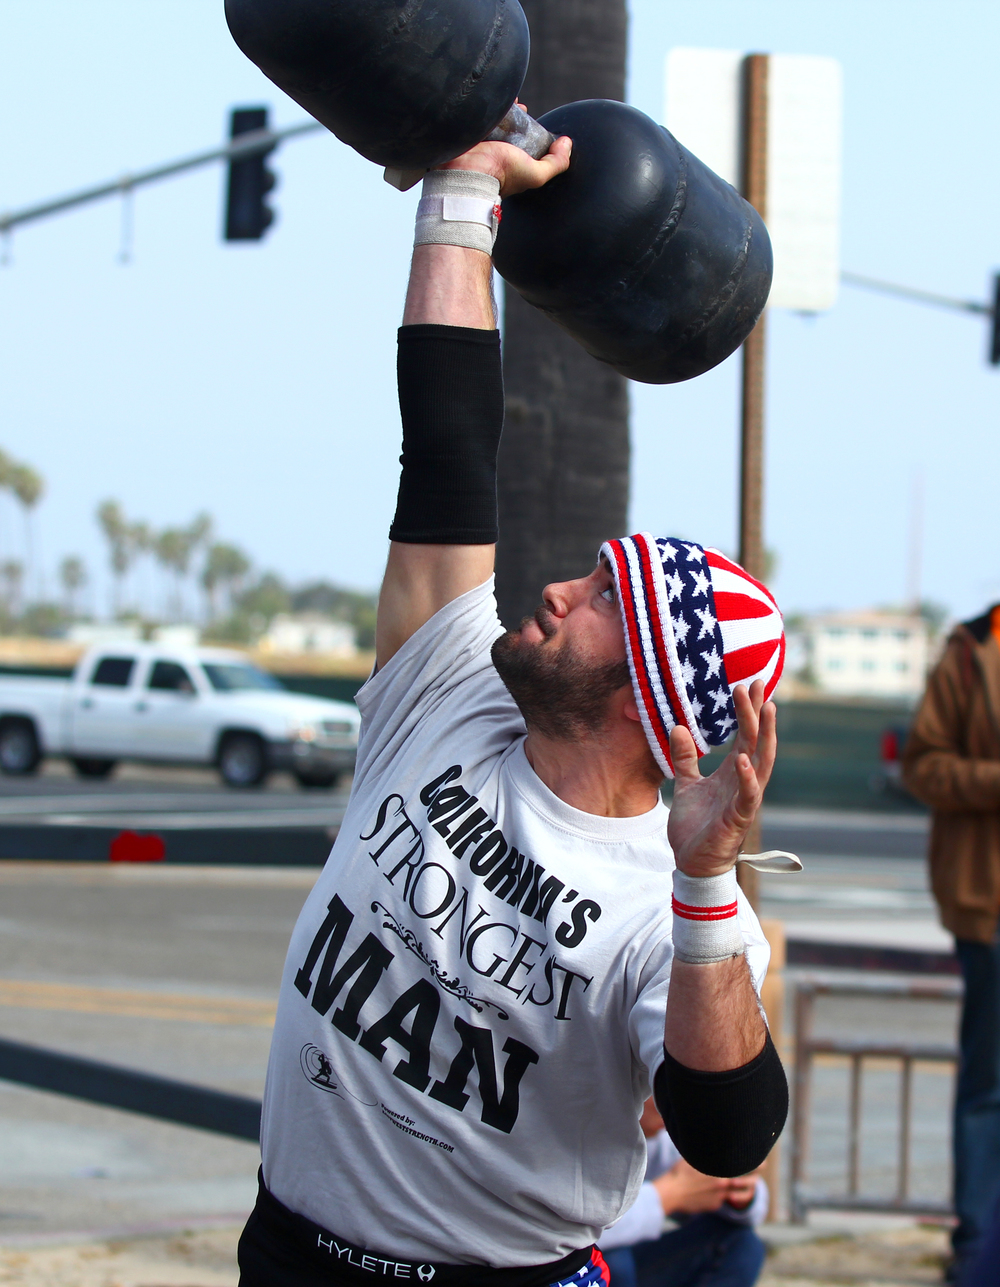 San Diego personal trainer and strongman performs 1 arm dumbbell press